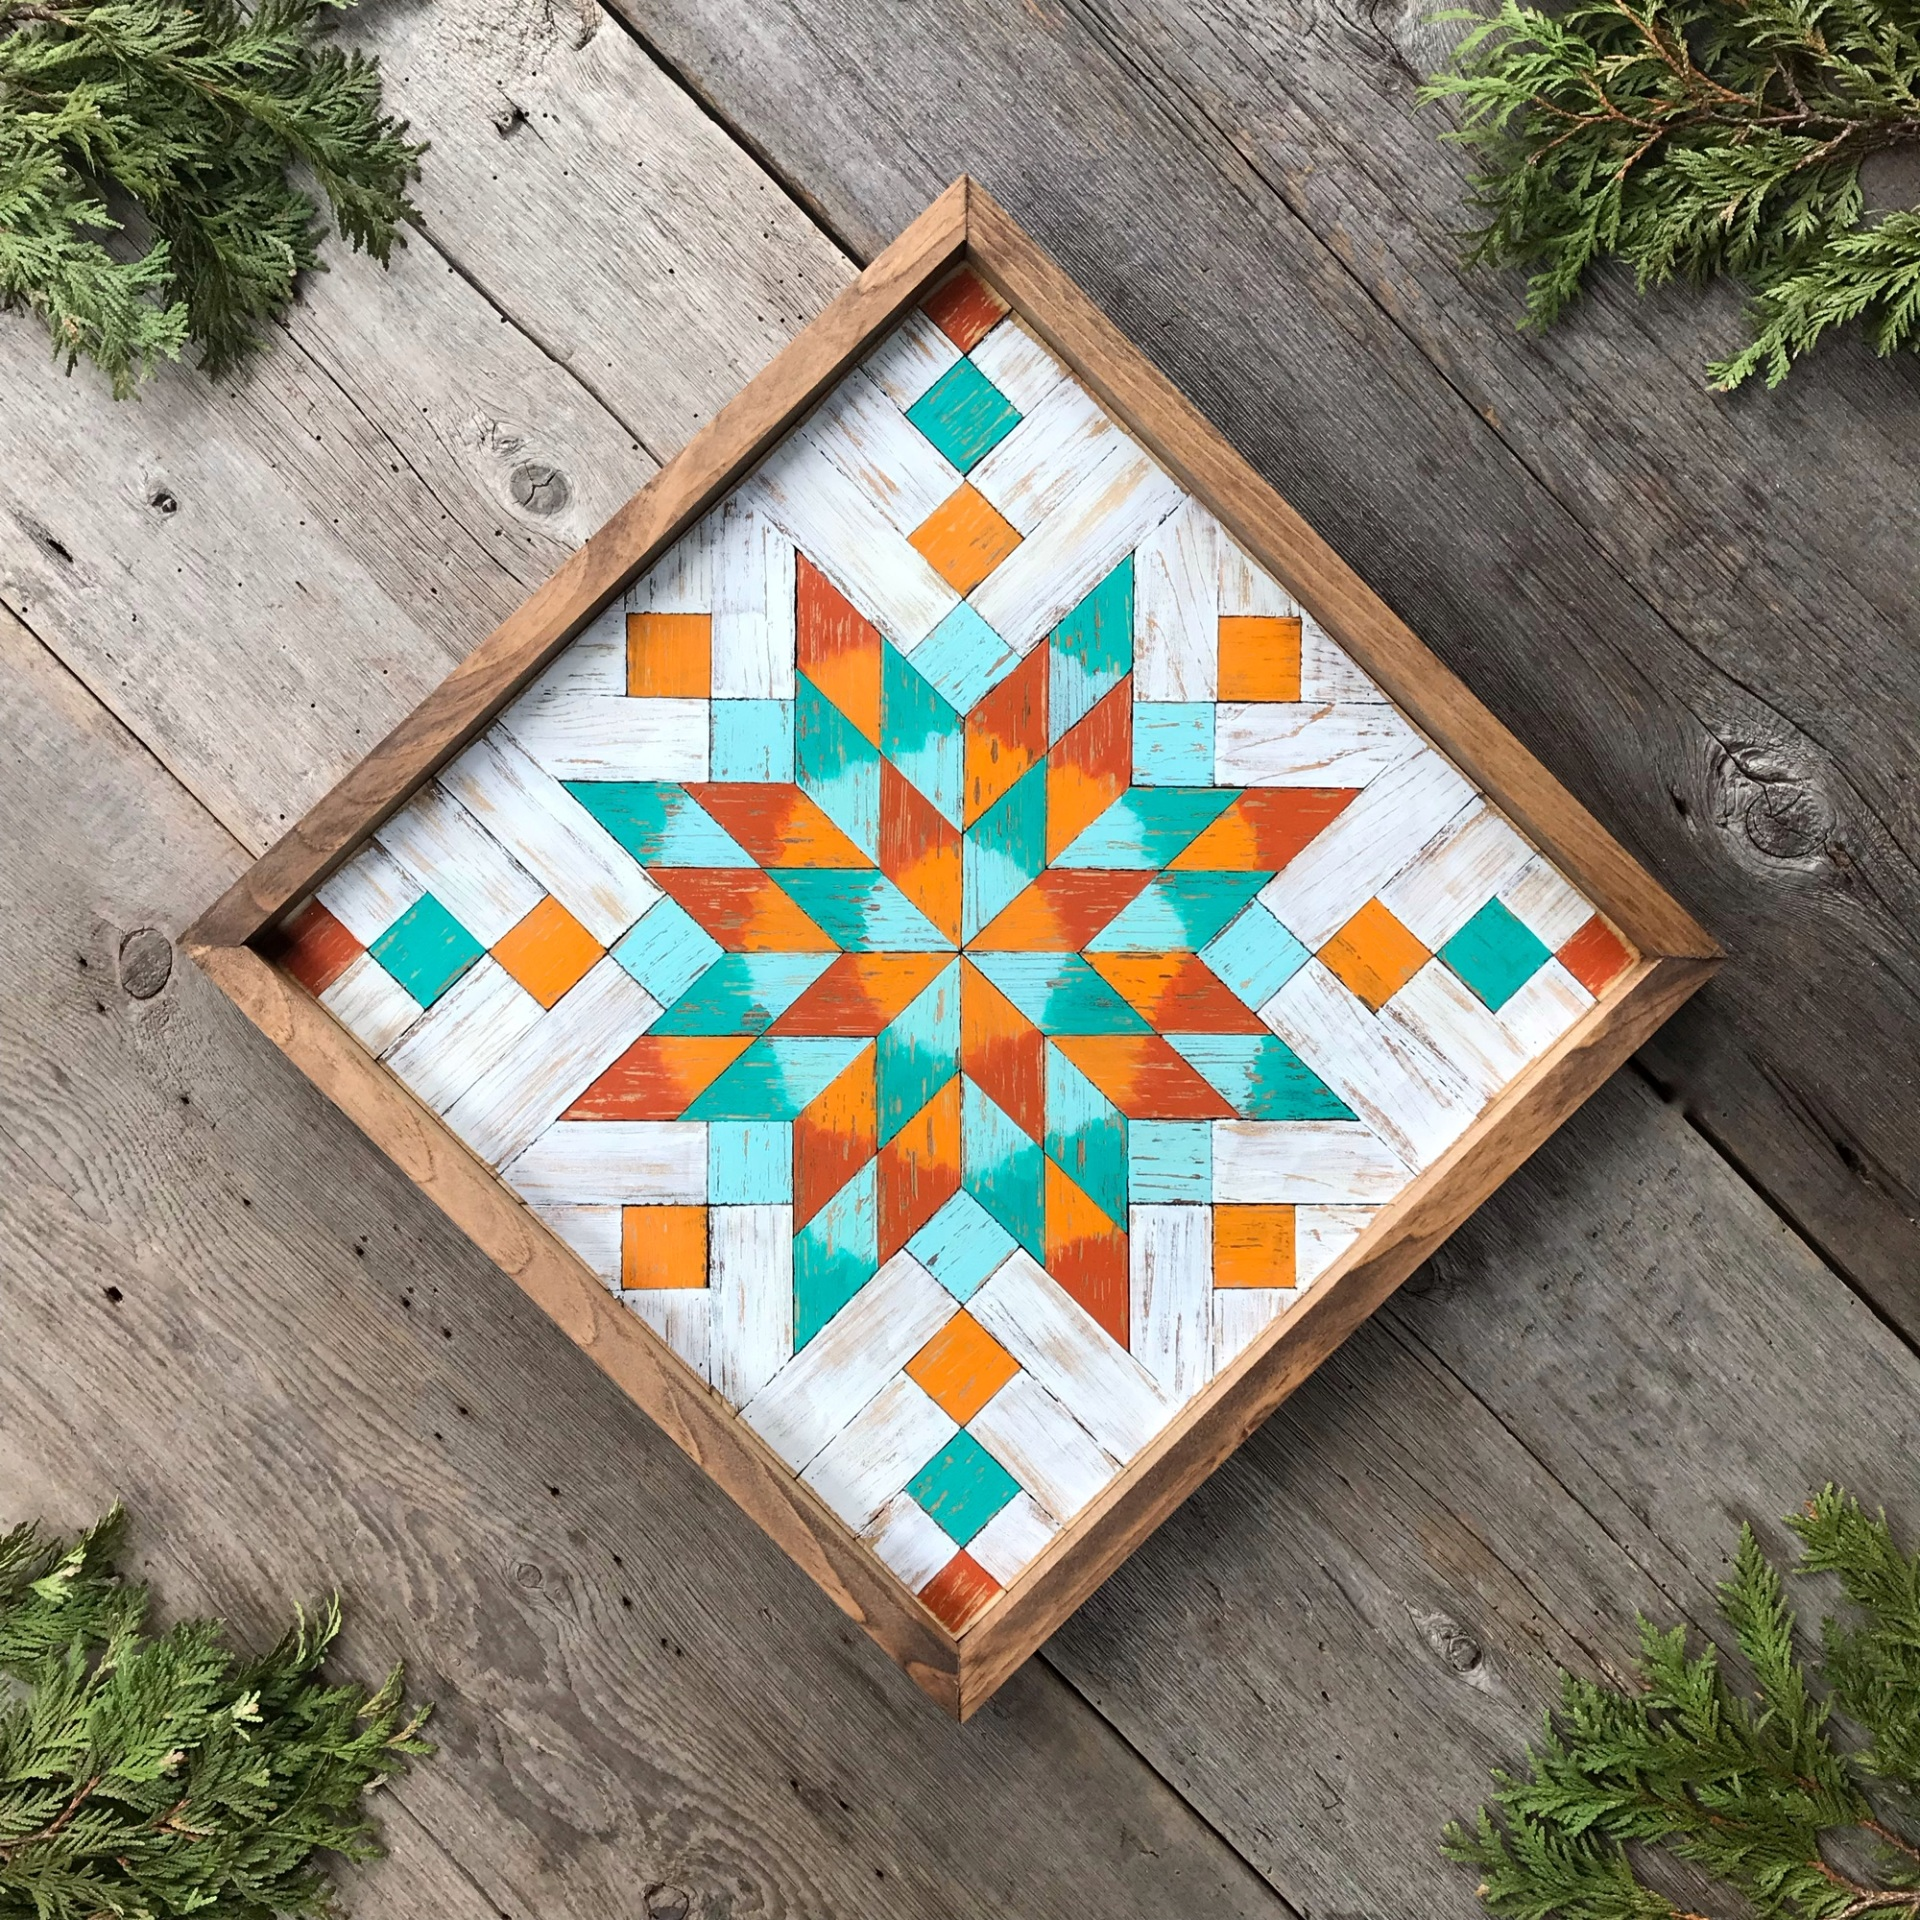 Barn Quilt, Wood Wall Art, Wooden Barn Quilts, Star Quilt Square, Starburst Bursting Star Pattern, Colorful Wood Wood Wall Decor